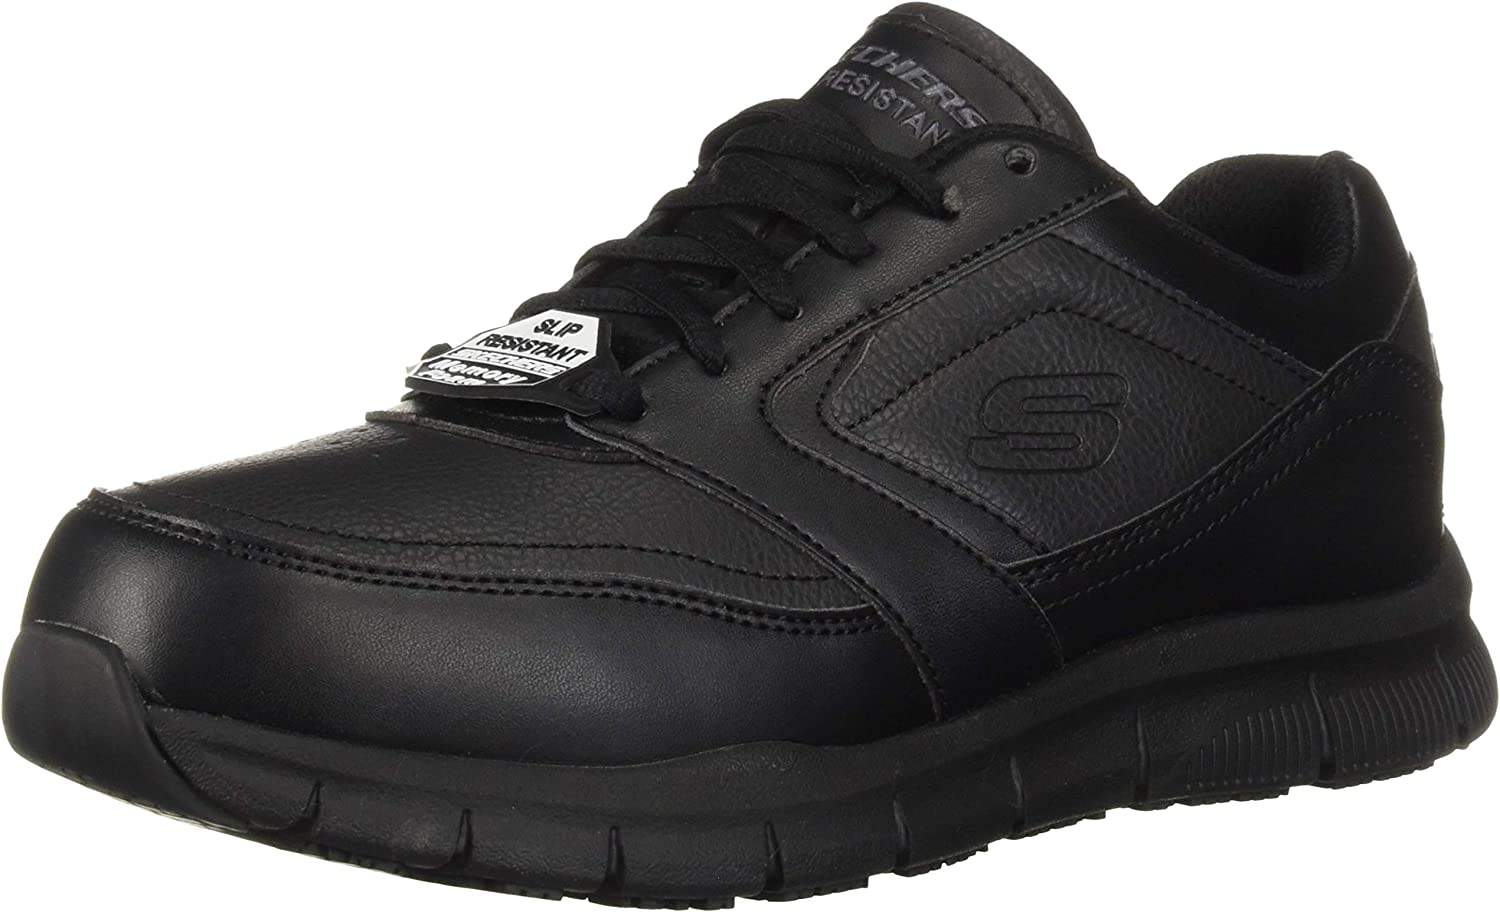 Skechers Men's Nampa Food Service Shoe